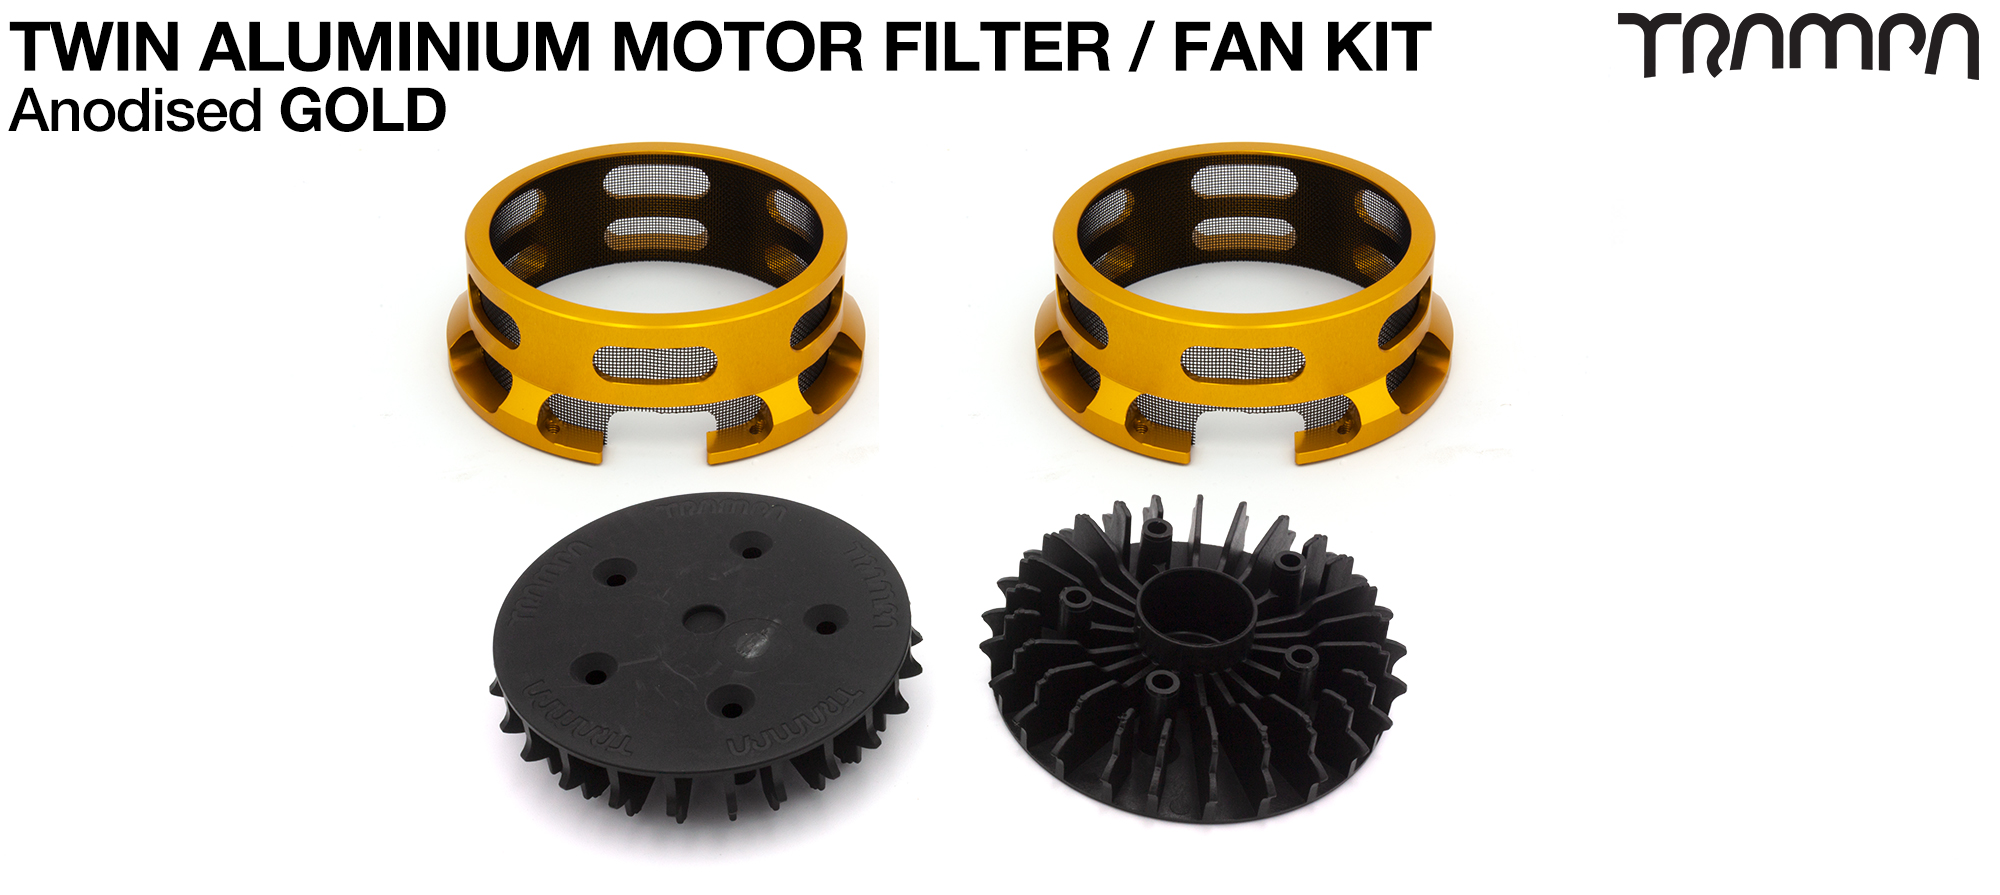 14FiFties BLACK Motor protection Housing with GOLD particle Filter & Fan - TWIN